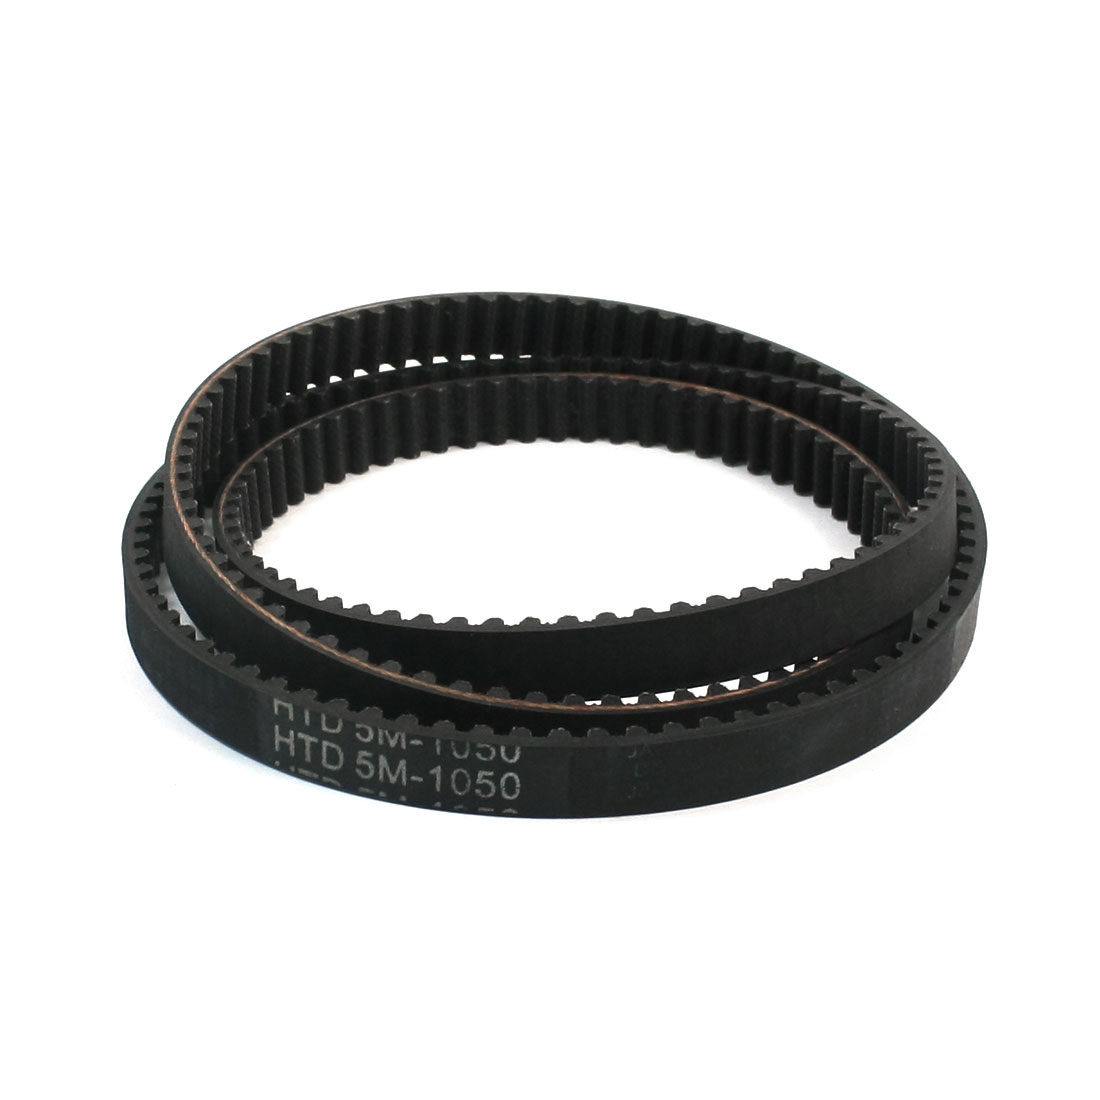 HTD 5M-1050 1050mm Girth 210 Teeth 5mm Pitch 11mm Wide Industrial Timing Belt